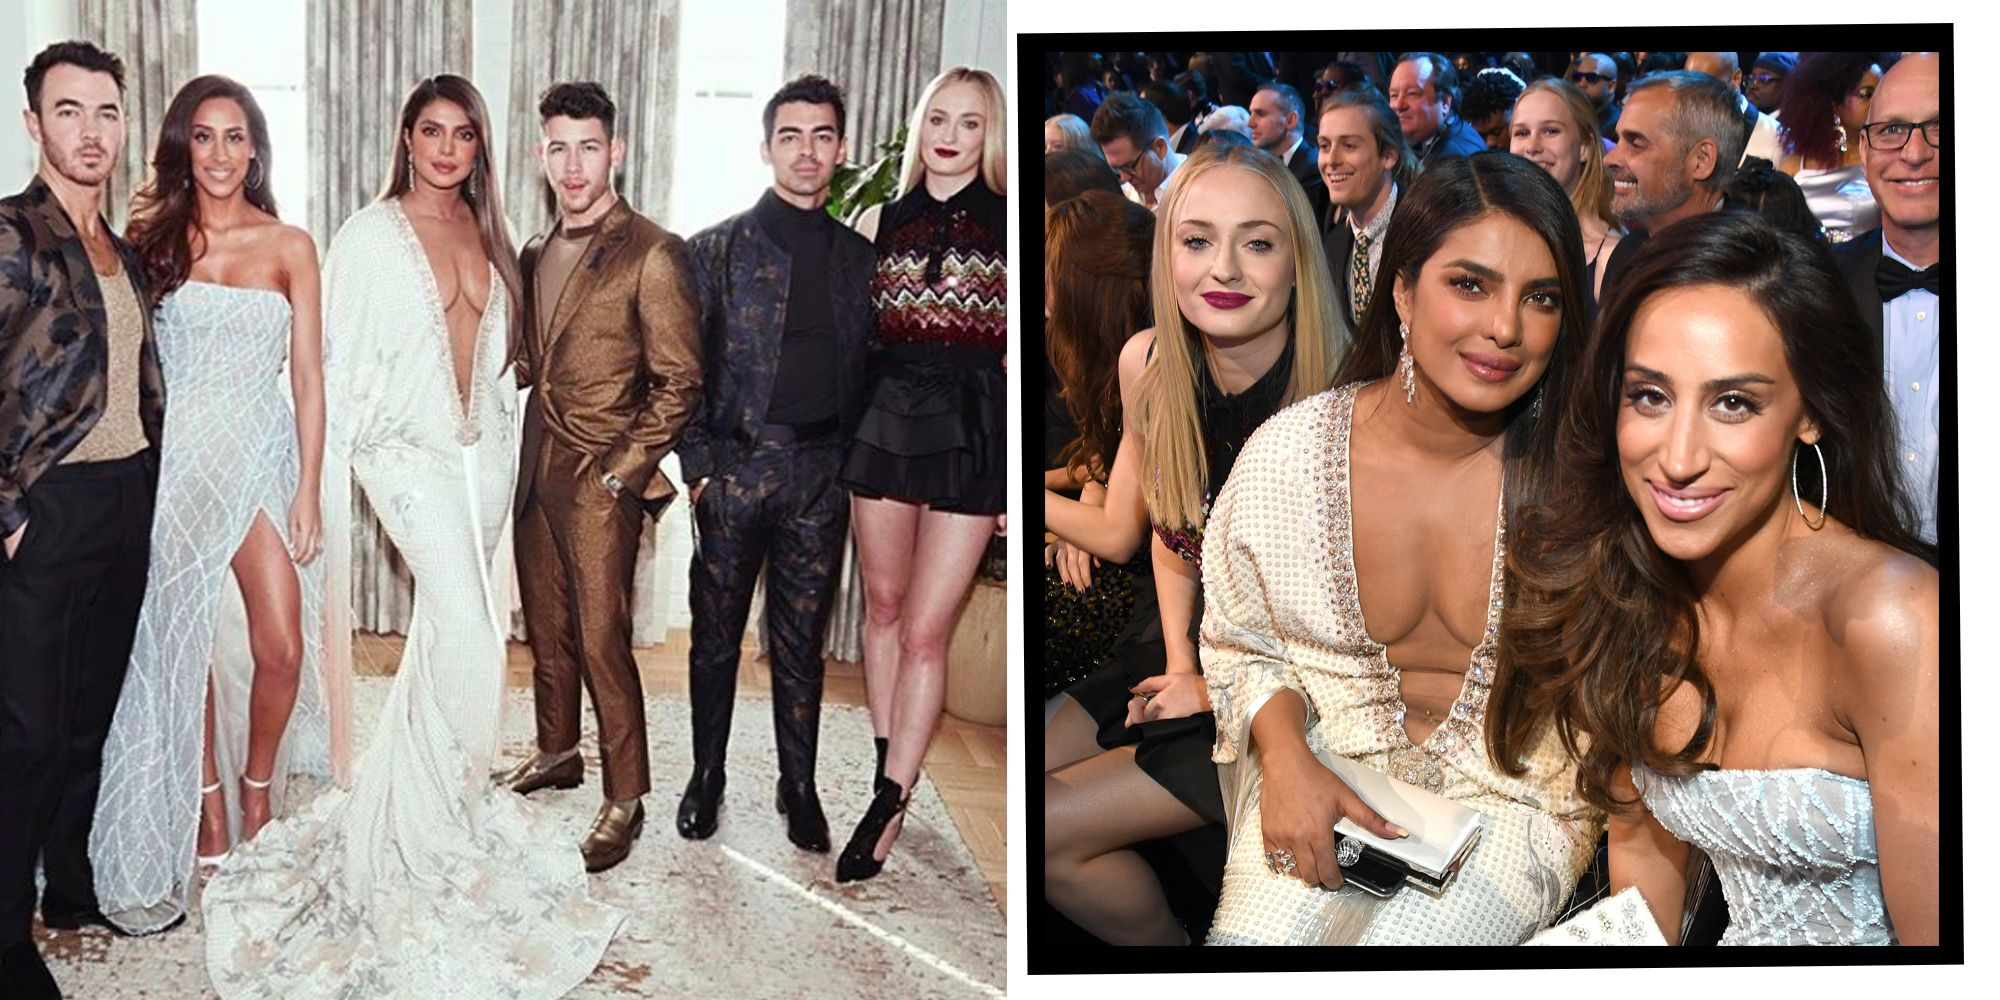 Grammy Awards 2020: Priyanka Chopra And Sophie Turner Had The Most Adorable Date Night With The Jonas Brothers